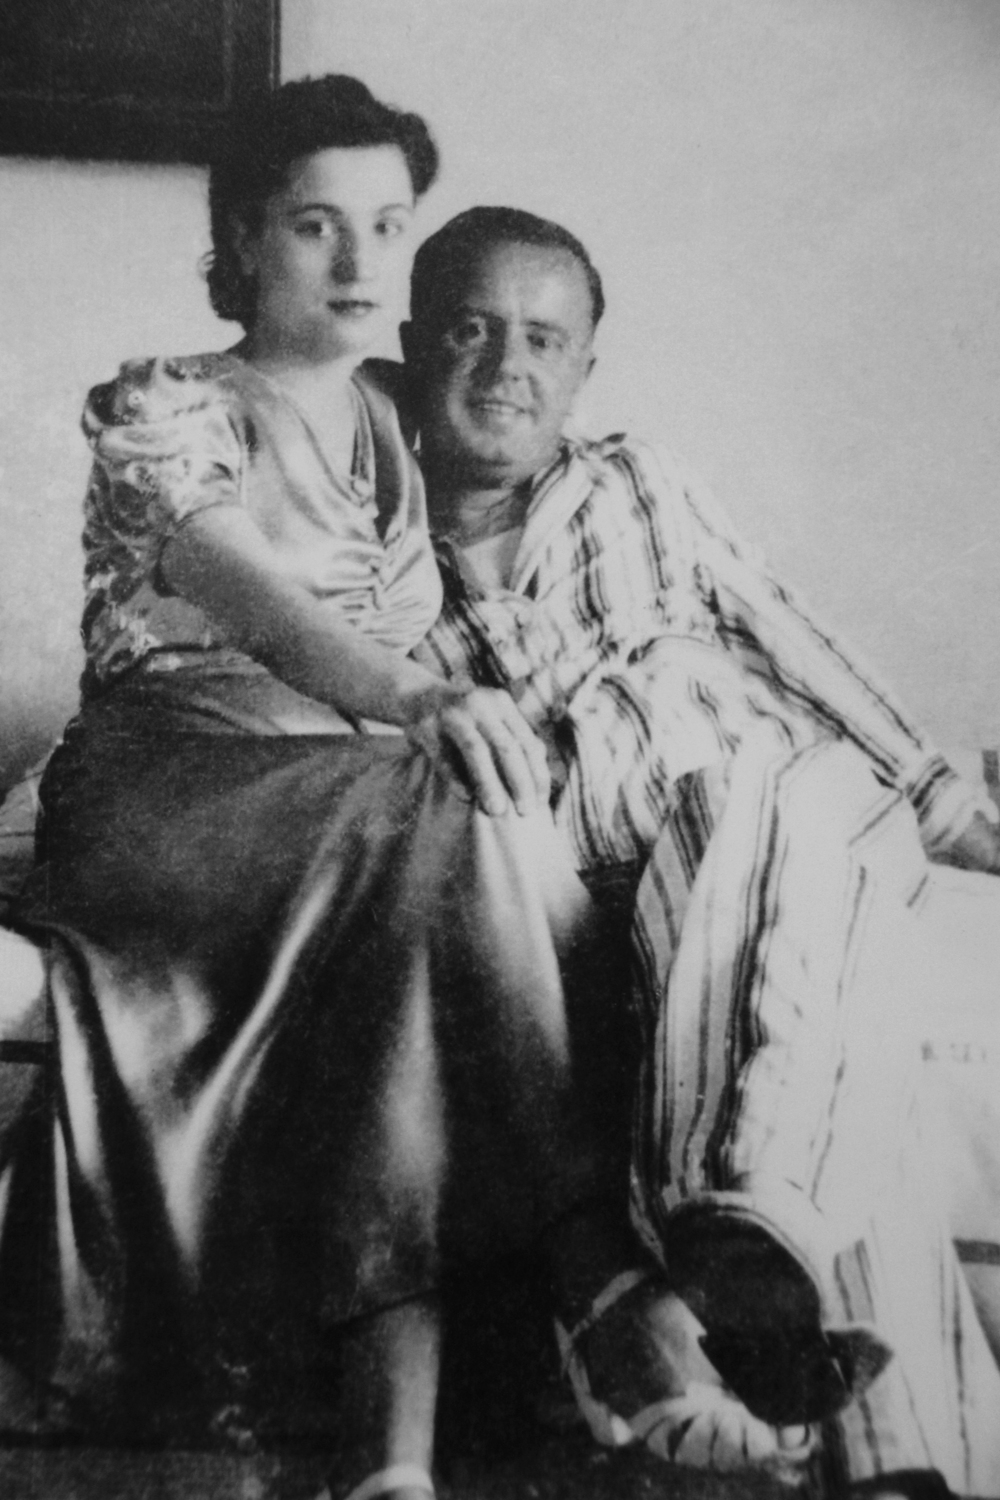 Keramidas with his wife, Ula